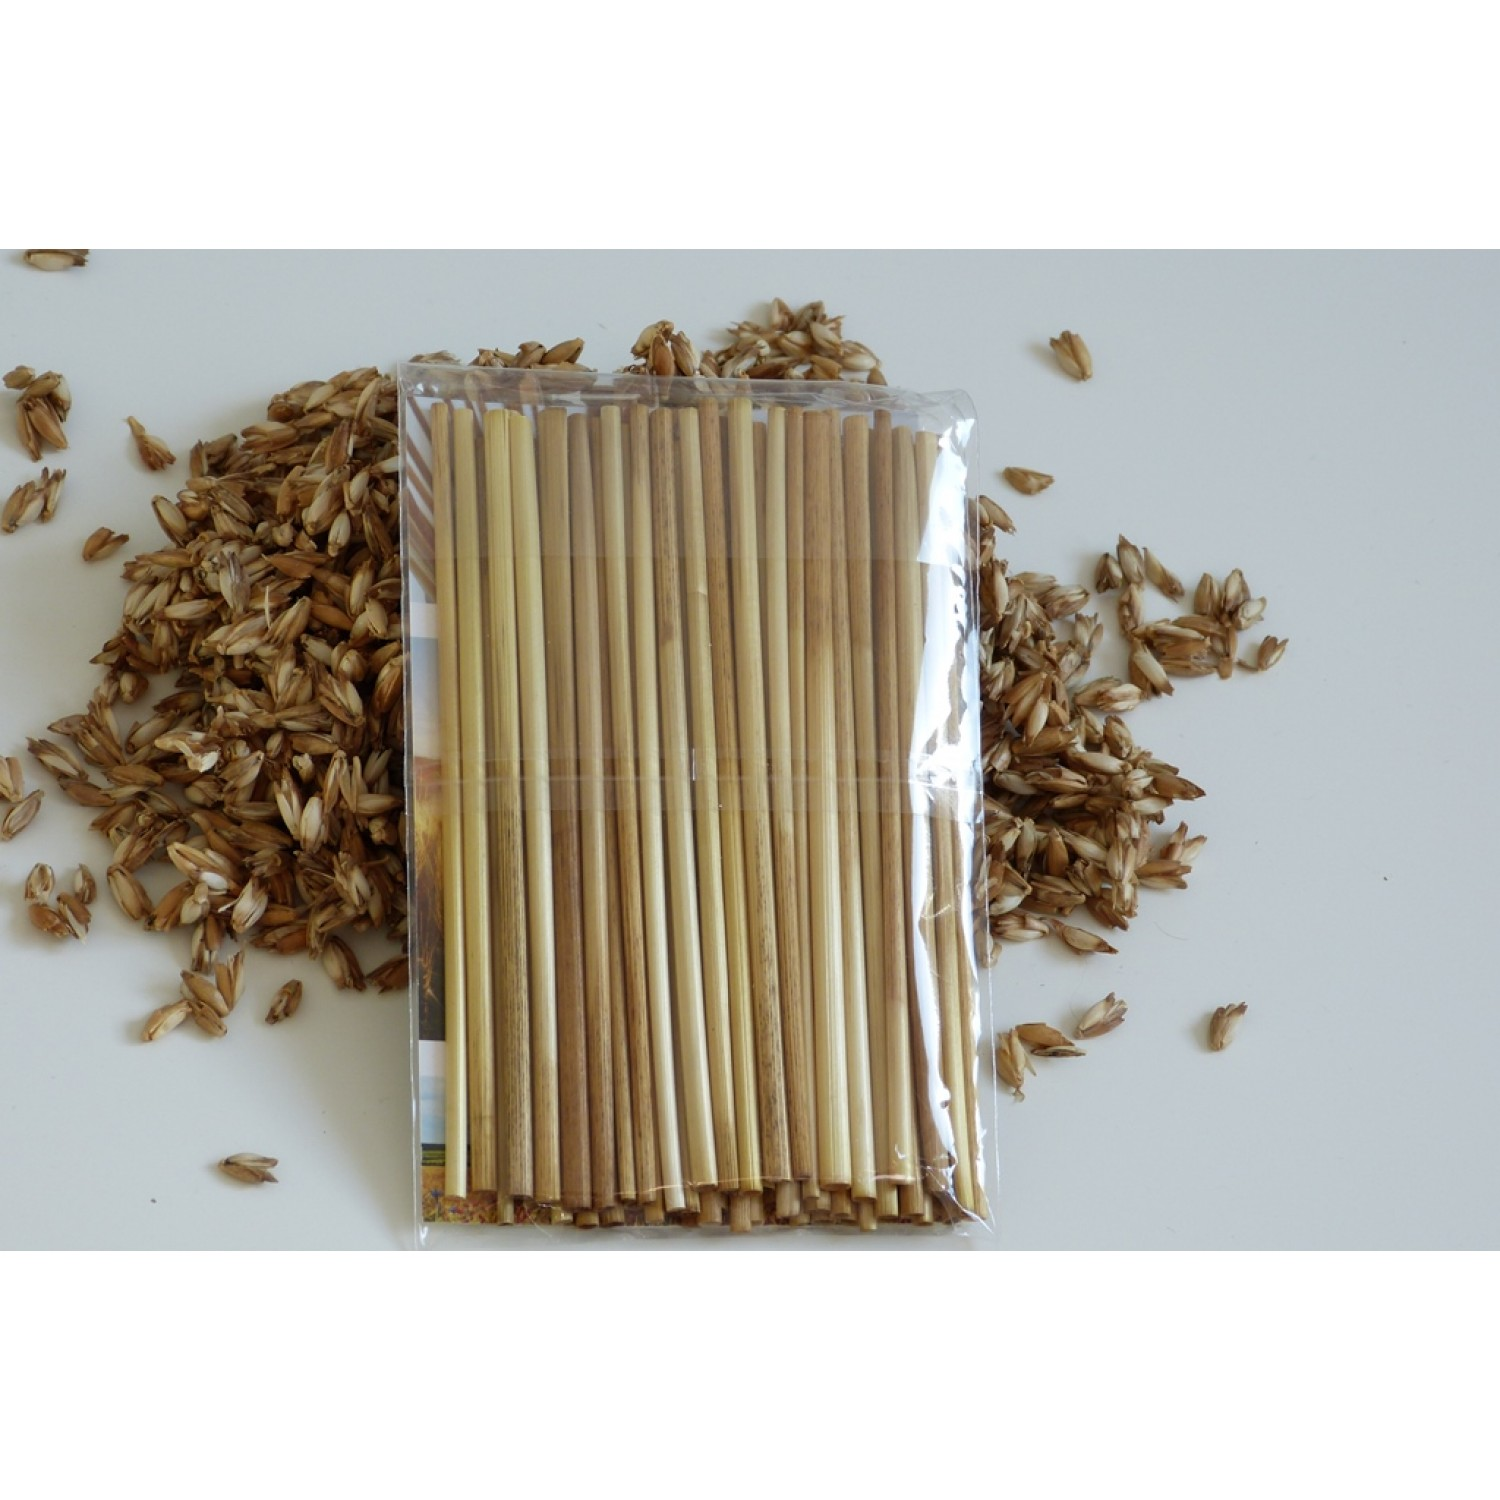 Eco Drinking Straw of organic rye - 2500 pieces